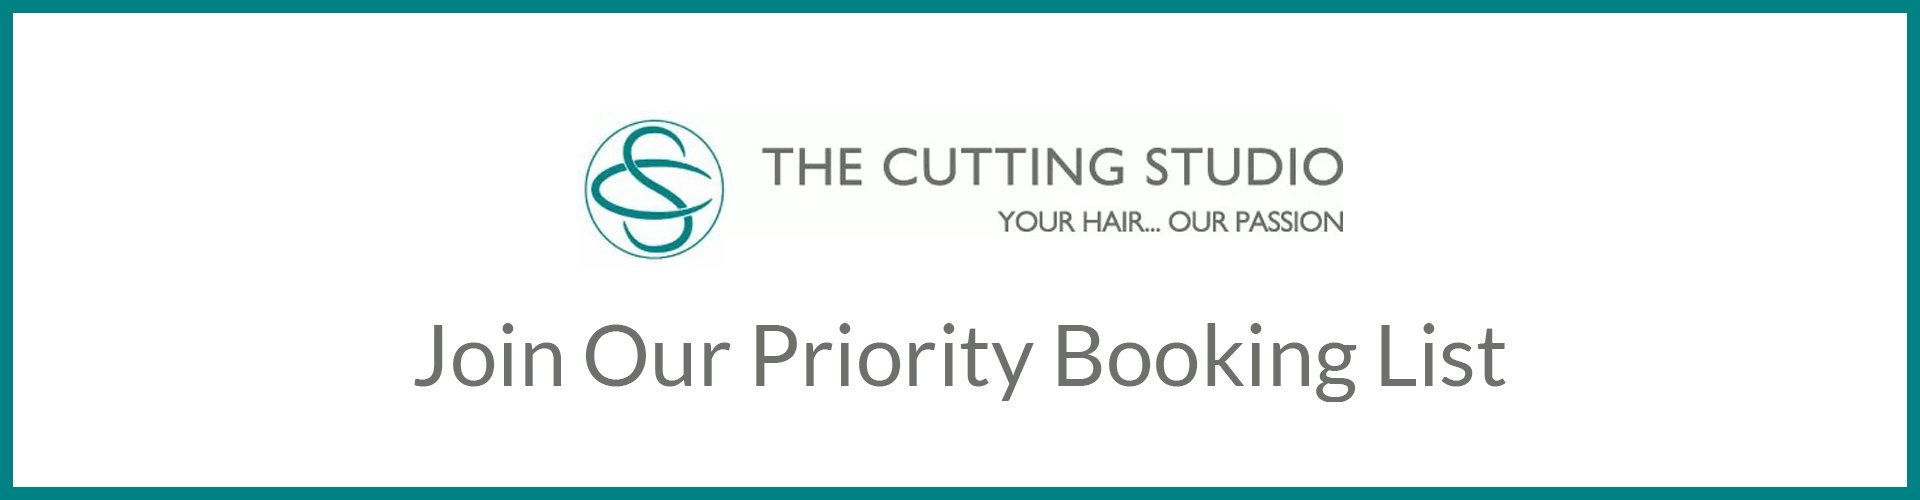 join our priority booking list at the cutting studio in hazlemere